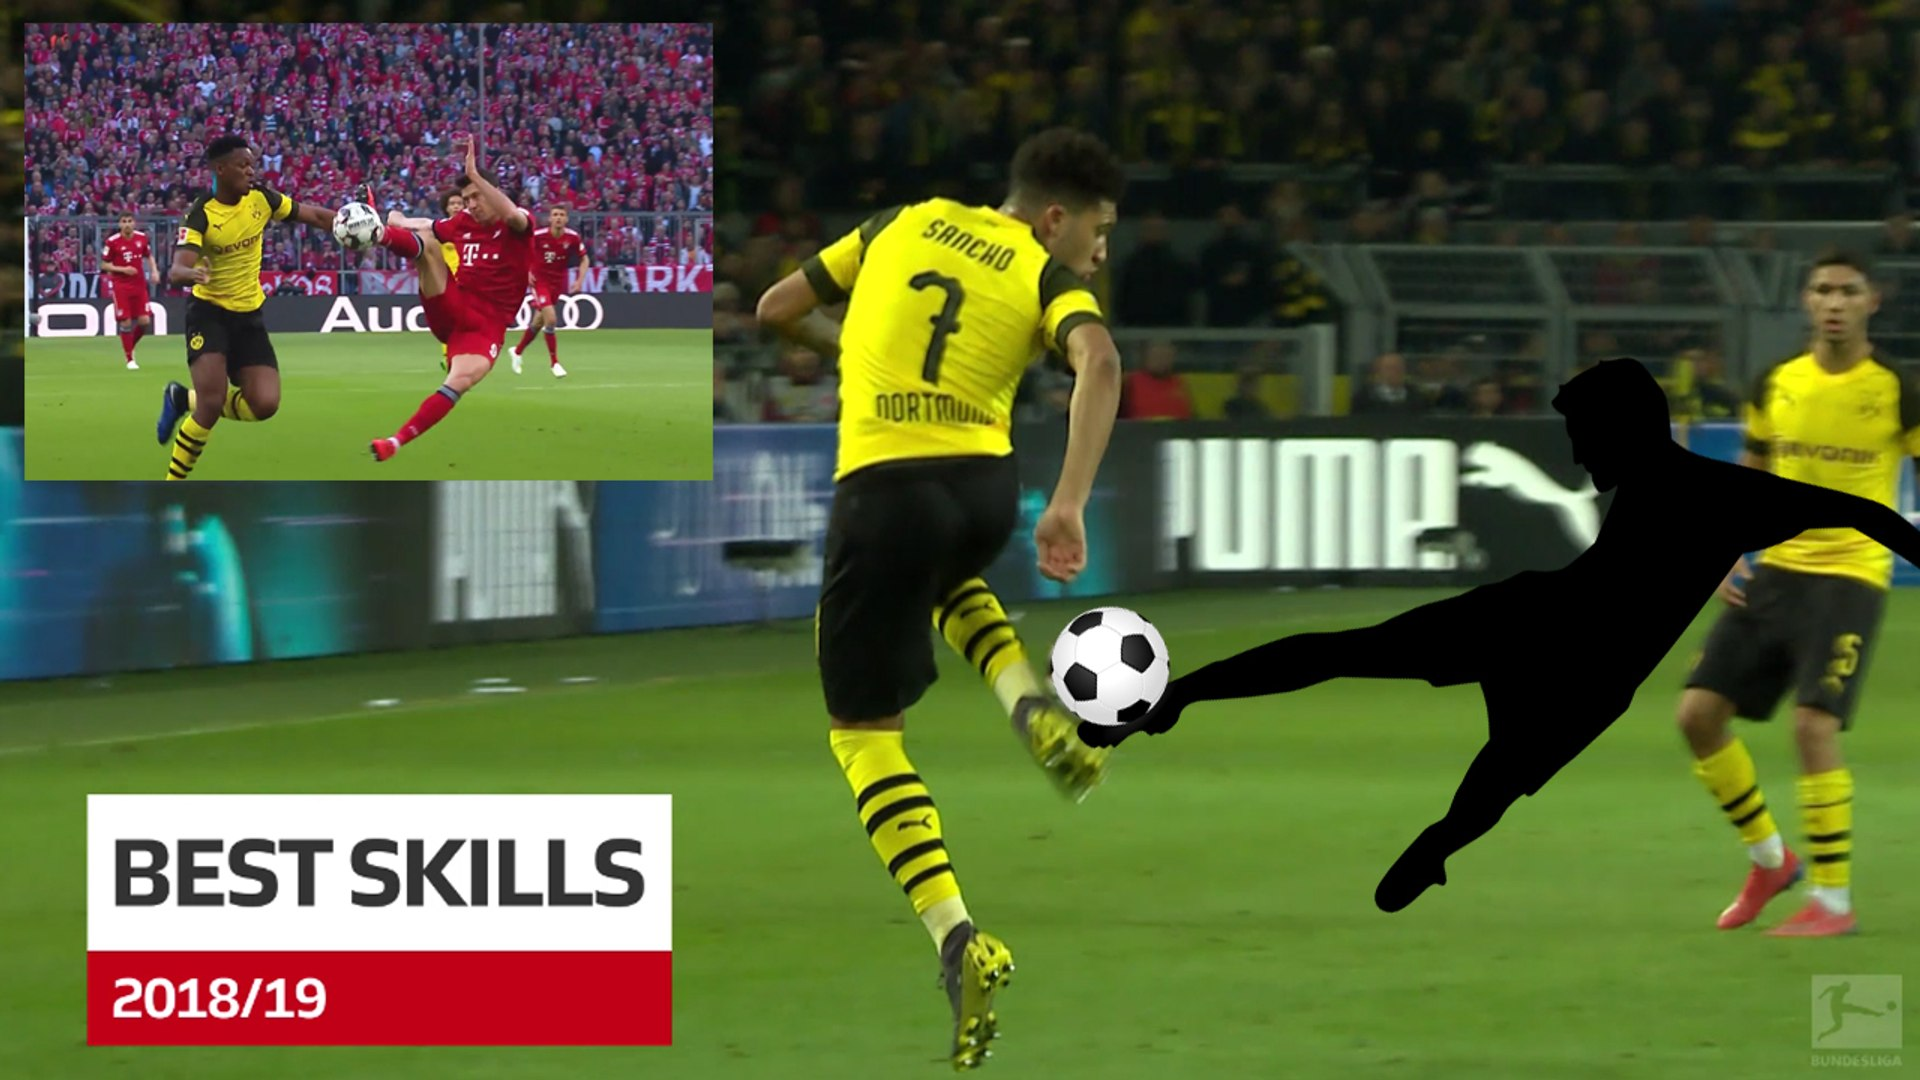 Bundesliga: Best skills of the season 2018/19